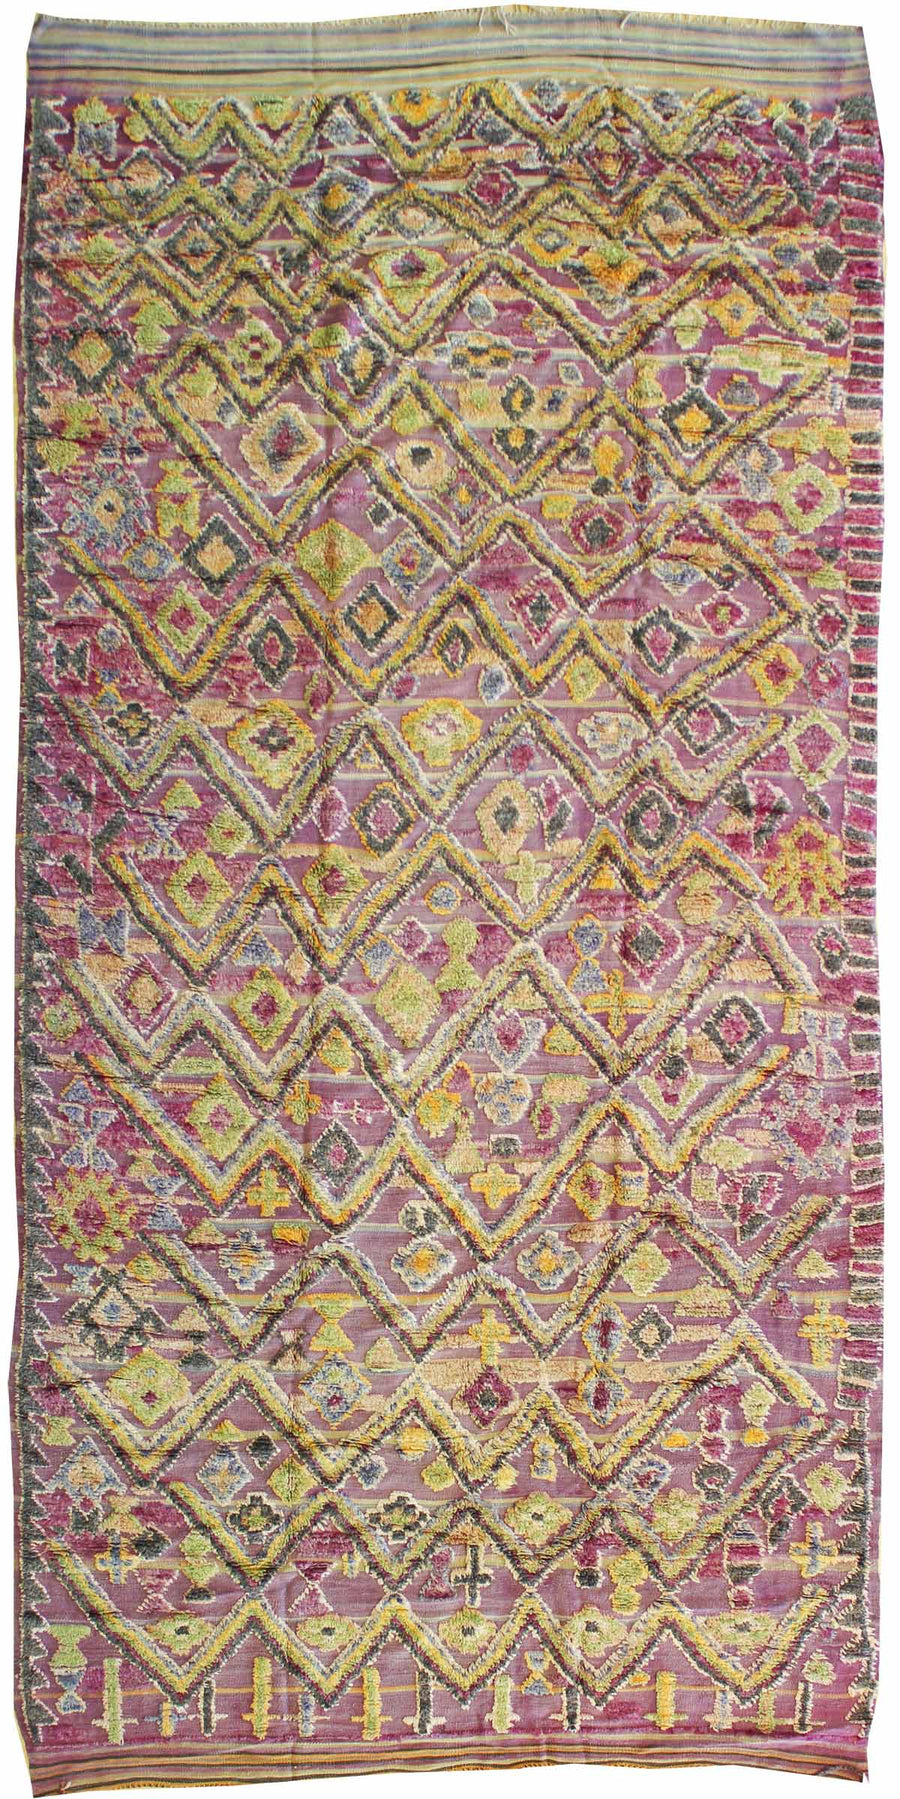 MIDDLE ATLAS HANDWOVEN RUG, J38933